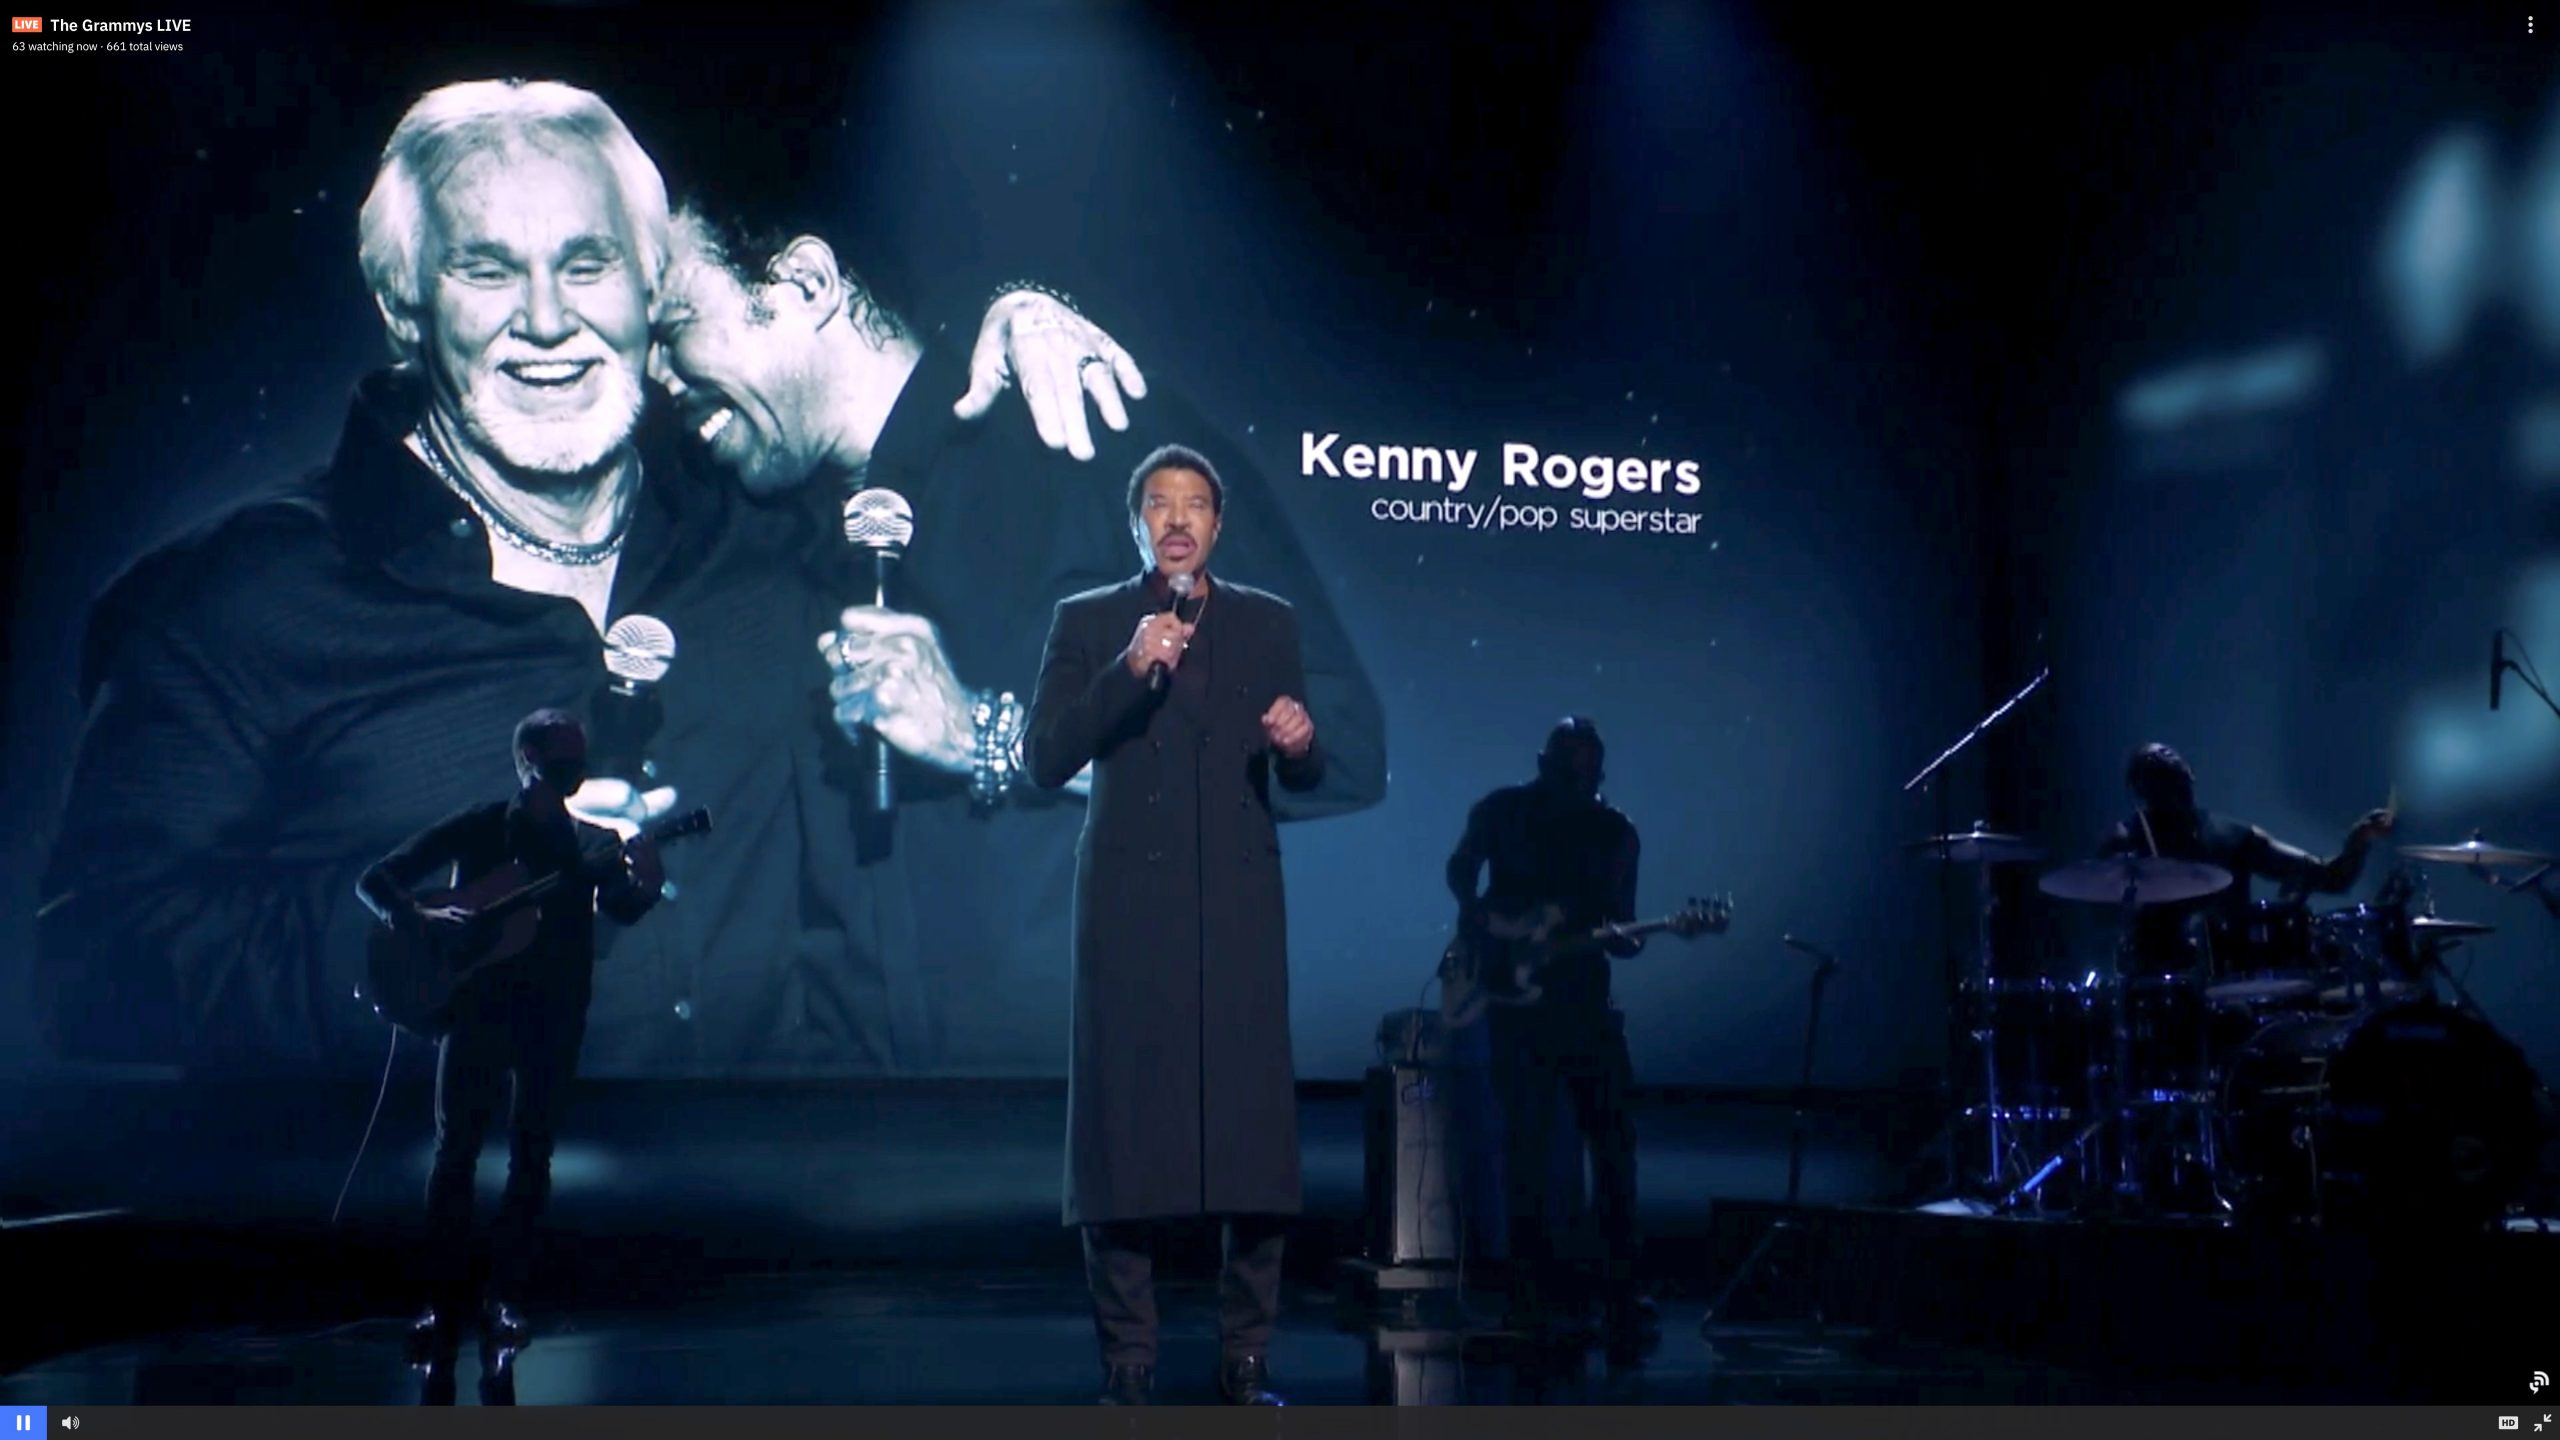 Lionel Richie Honors Kenny Rogers at 2021 GRAMMY Awards Sounds Like  Nashville